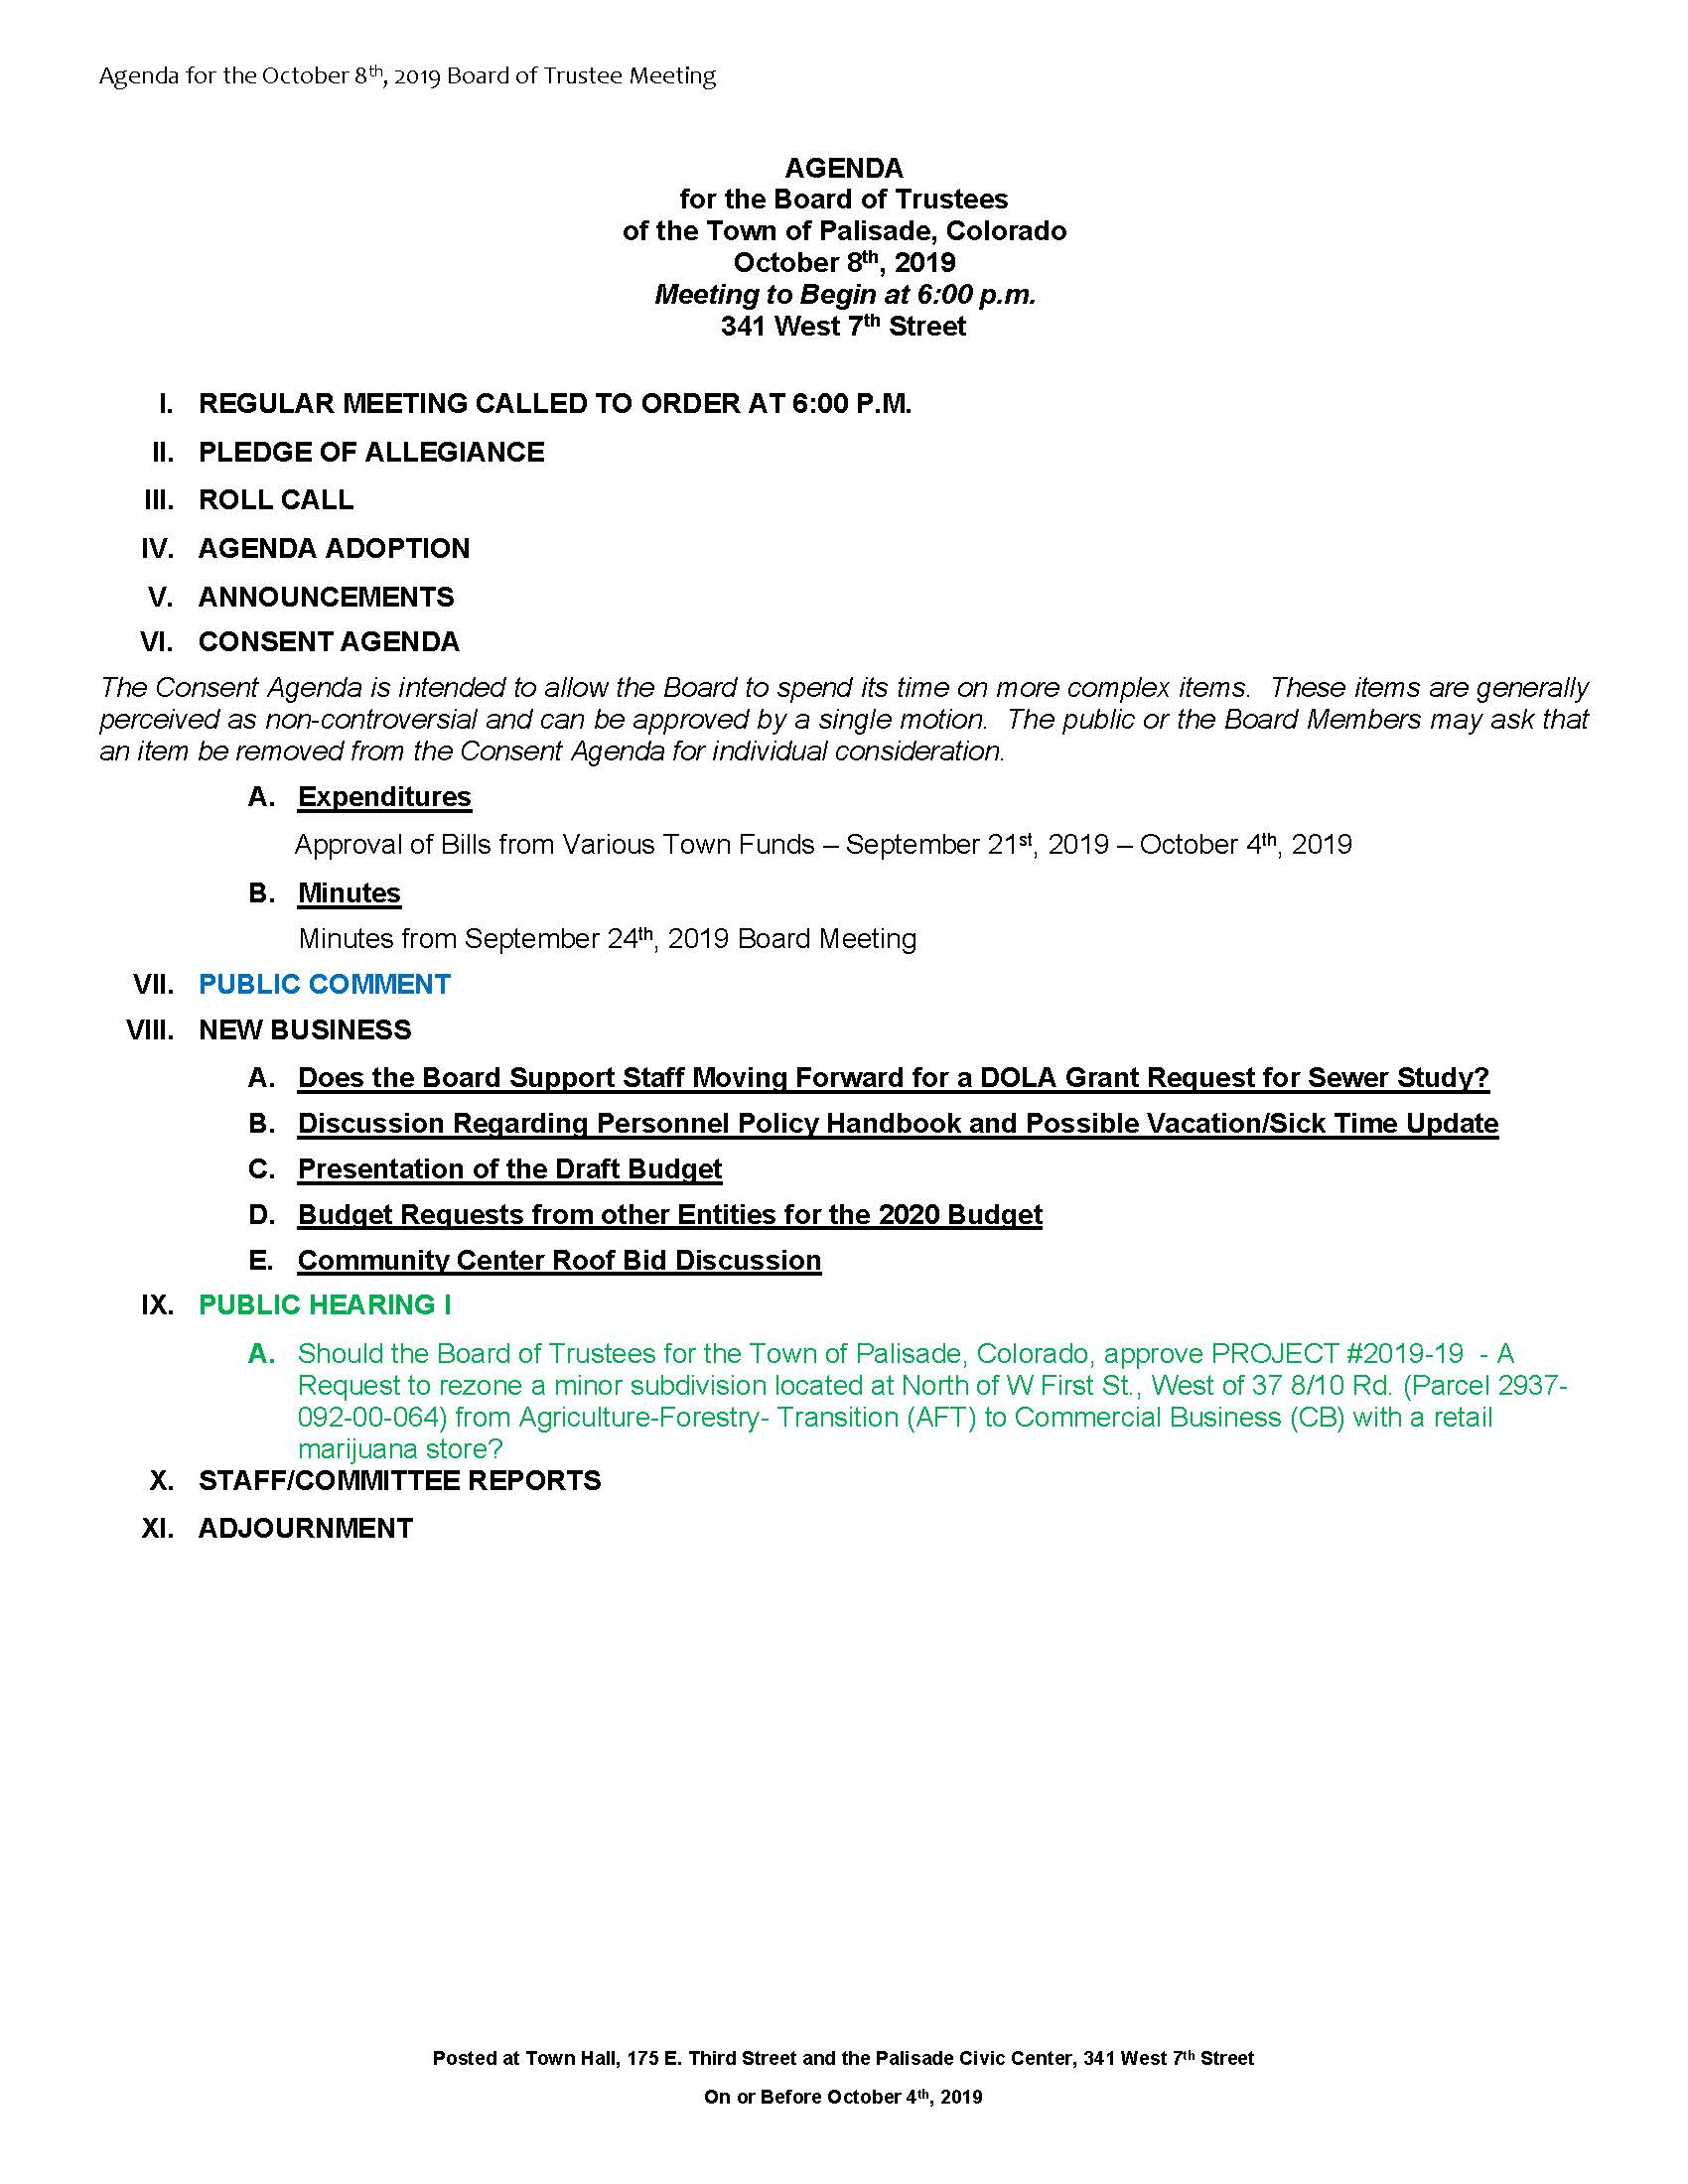 October 8th 2019 Board Meeting Agenda